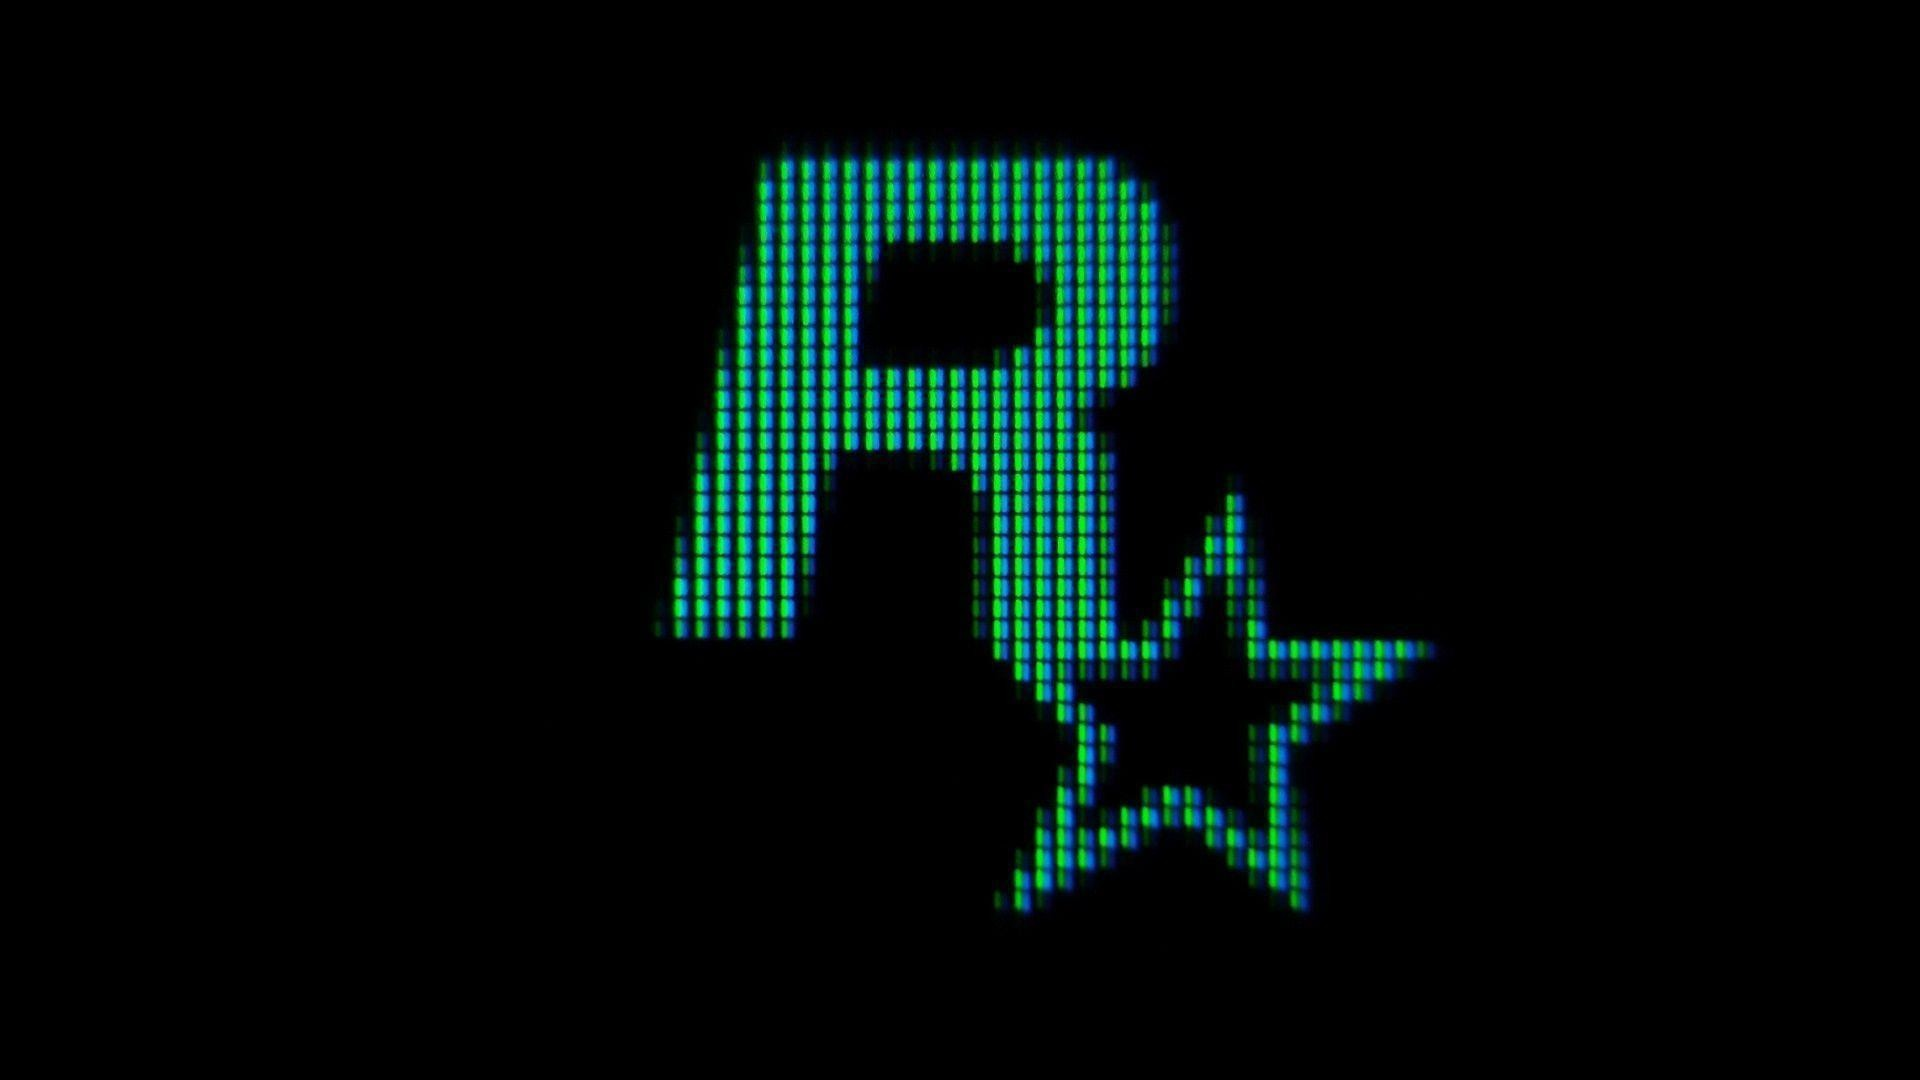 1920x1080 The Images of Rockstar Games Logos RGB  HD Wallpaper .